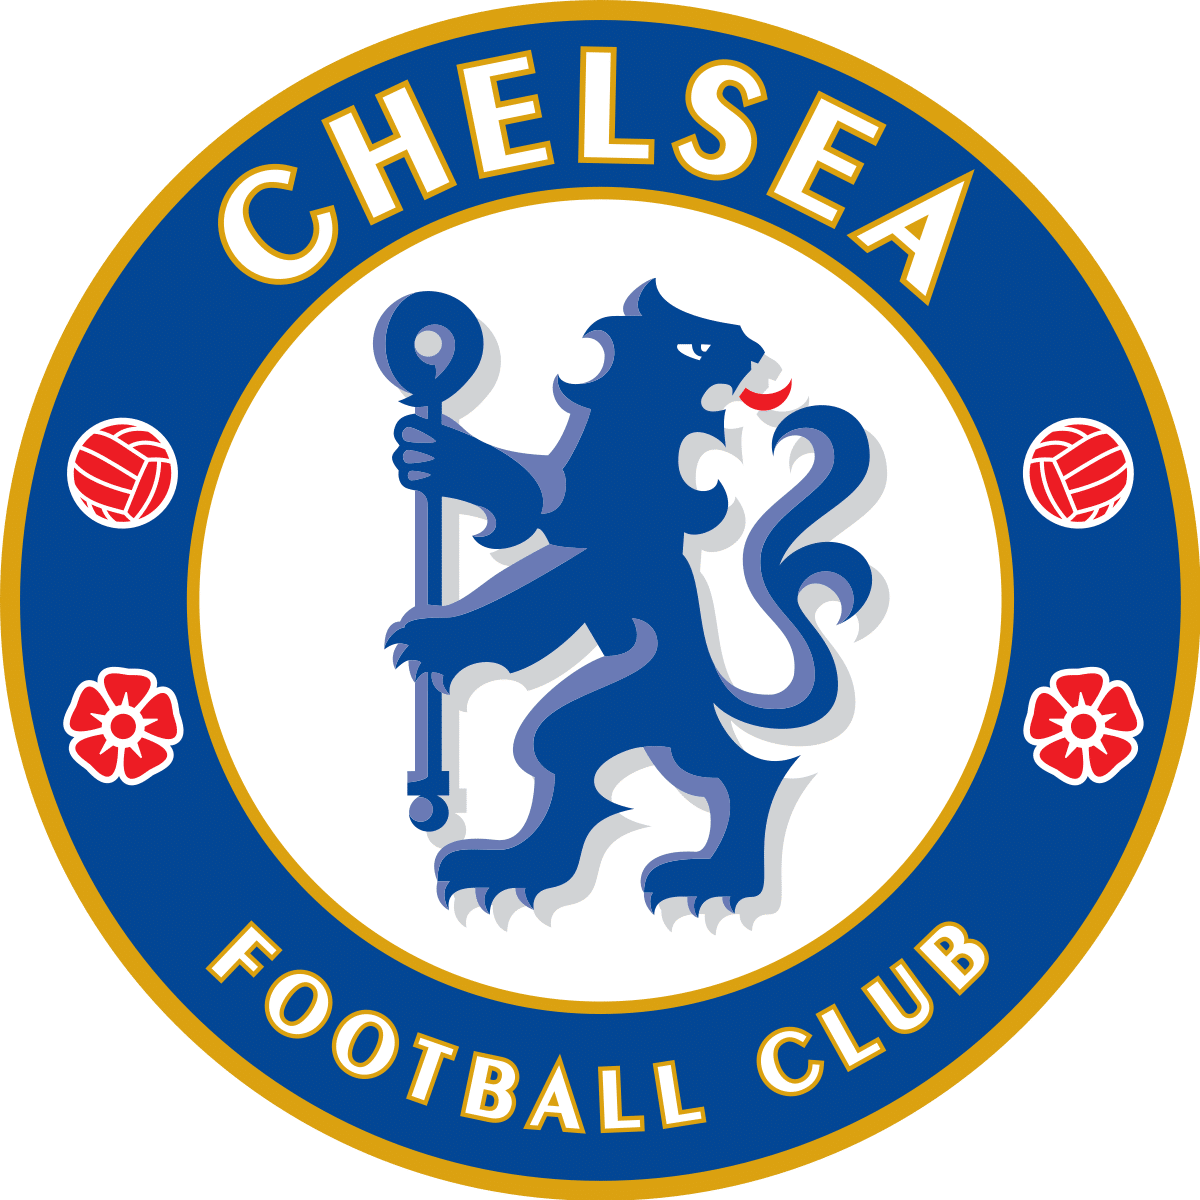 Chelsea Live Stream: Where to watch online the Reds Games?